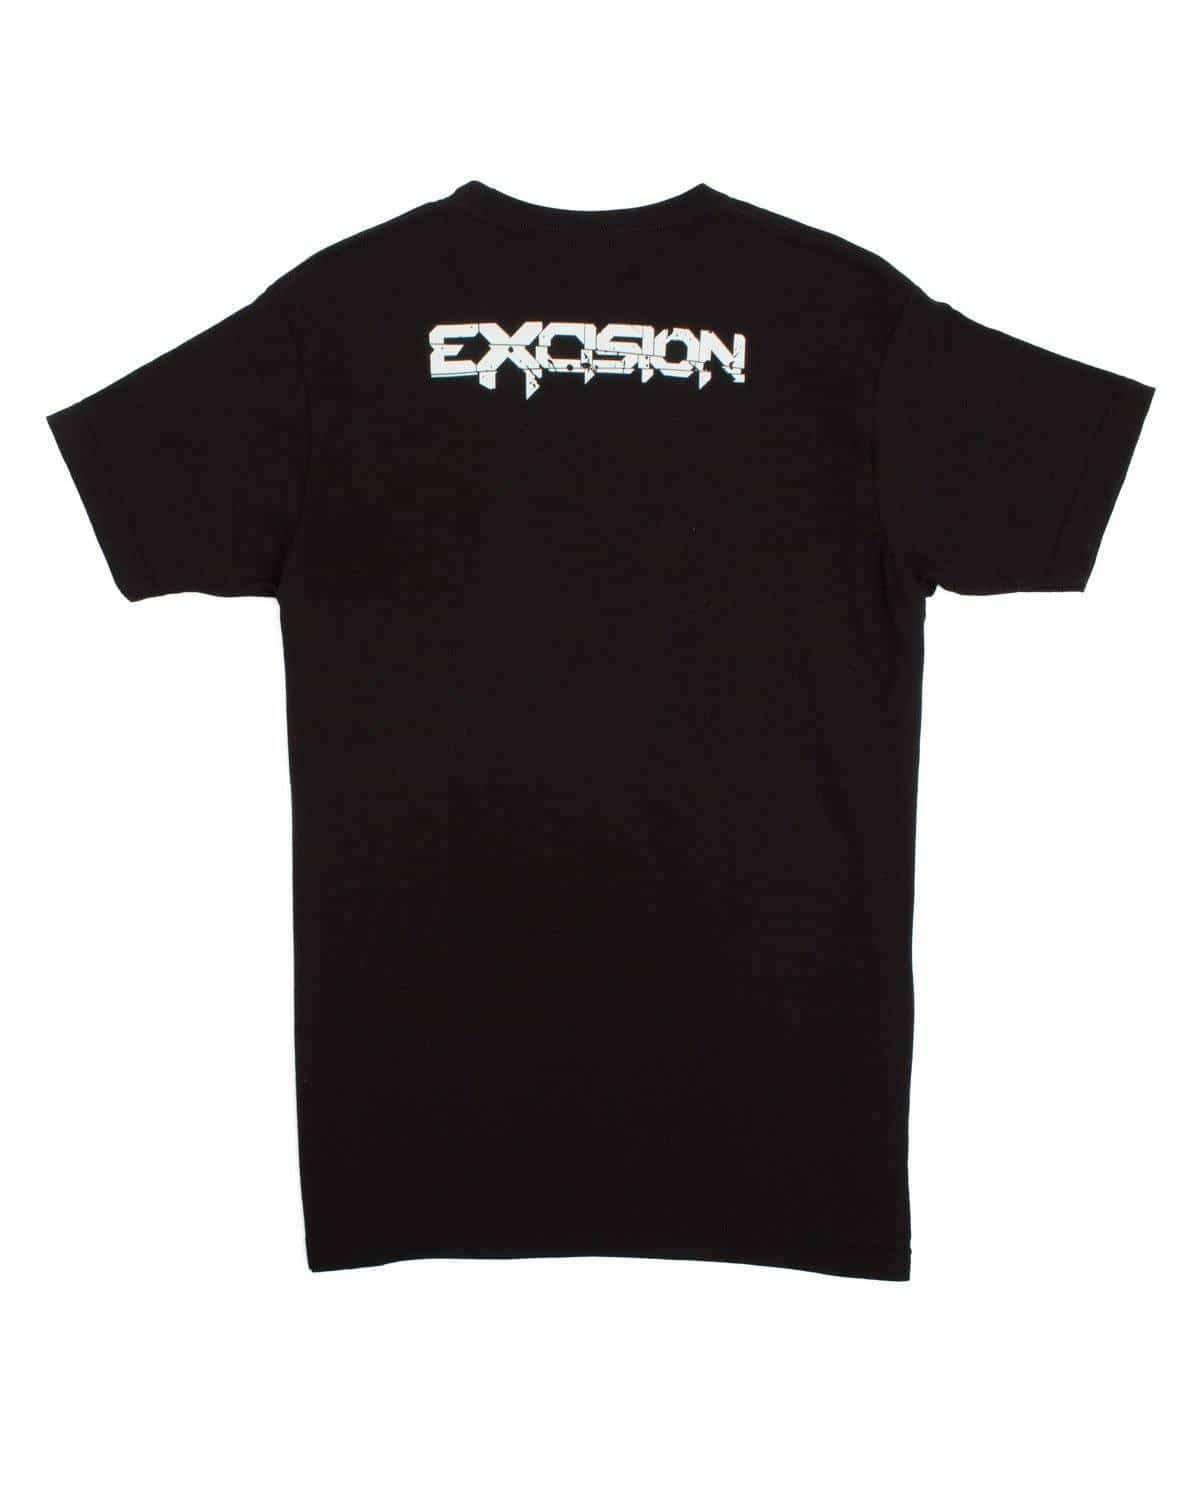 Excision 'Bass Battle' Unisex T-Shirt - Purple